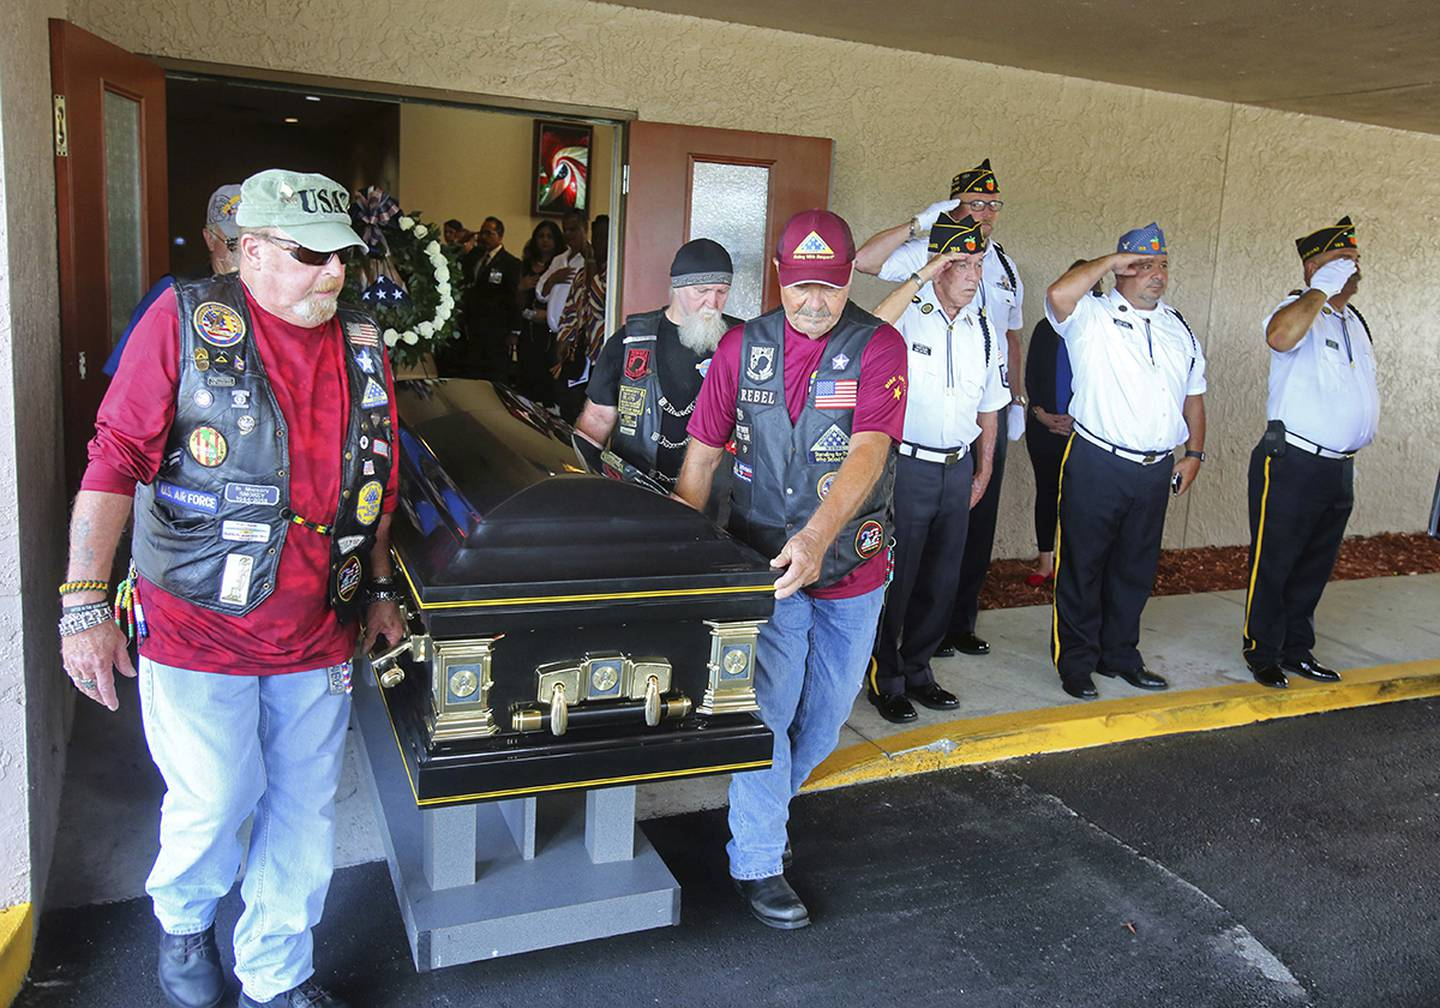 Motorcyclists from VFW Post 4287 and American Legion Post 155 present the casket of Stephen Jerald Spicer, a homeless U.S. Army veteran, during a full military honors service at Woodlawn Memorial Park in Gotha, Fla., July 18, 2019.